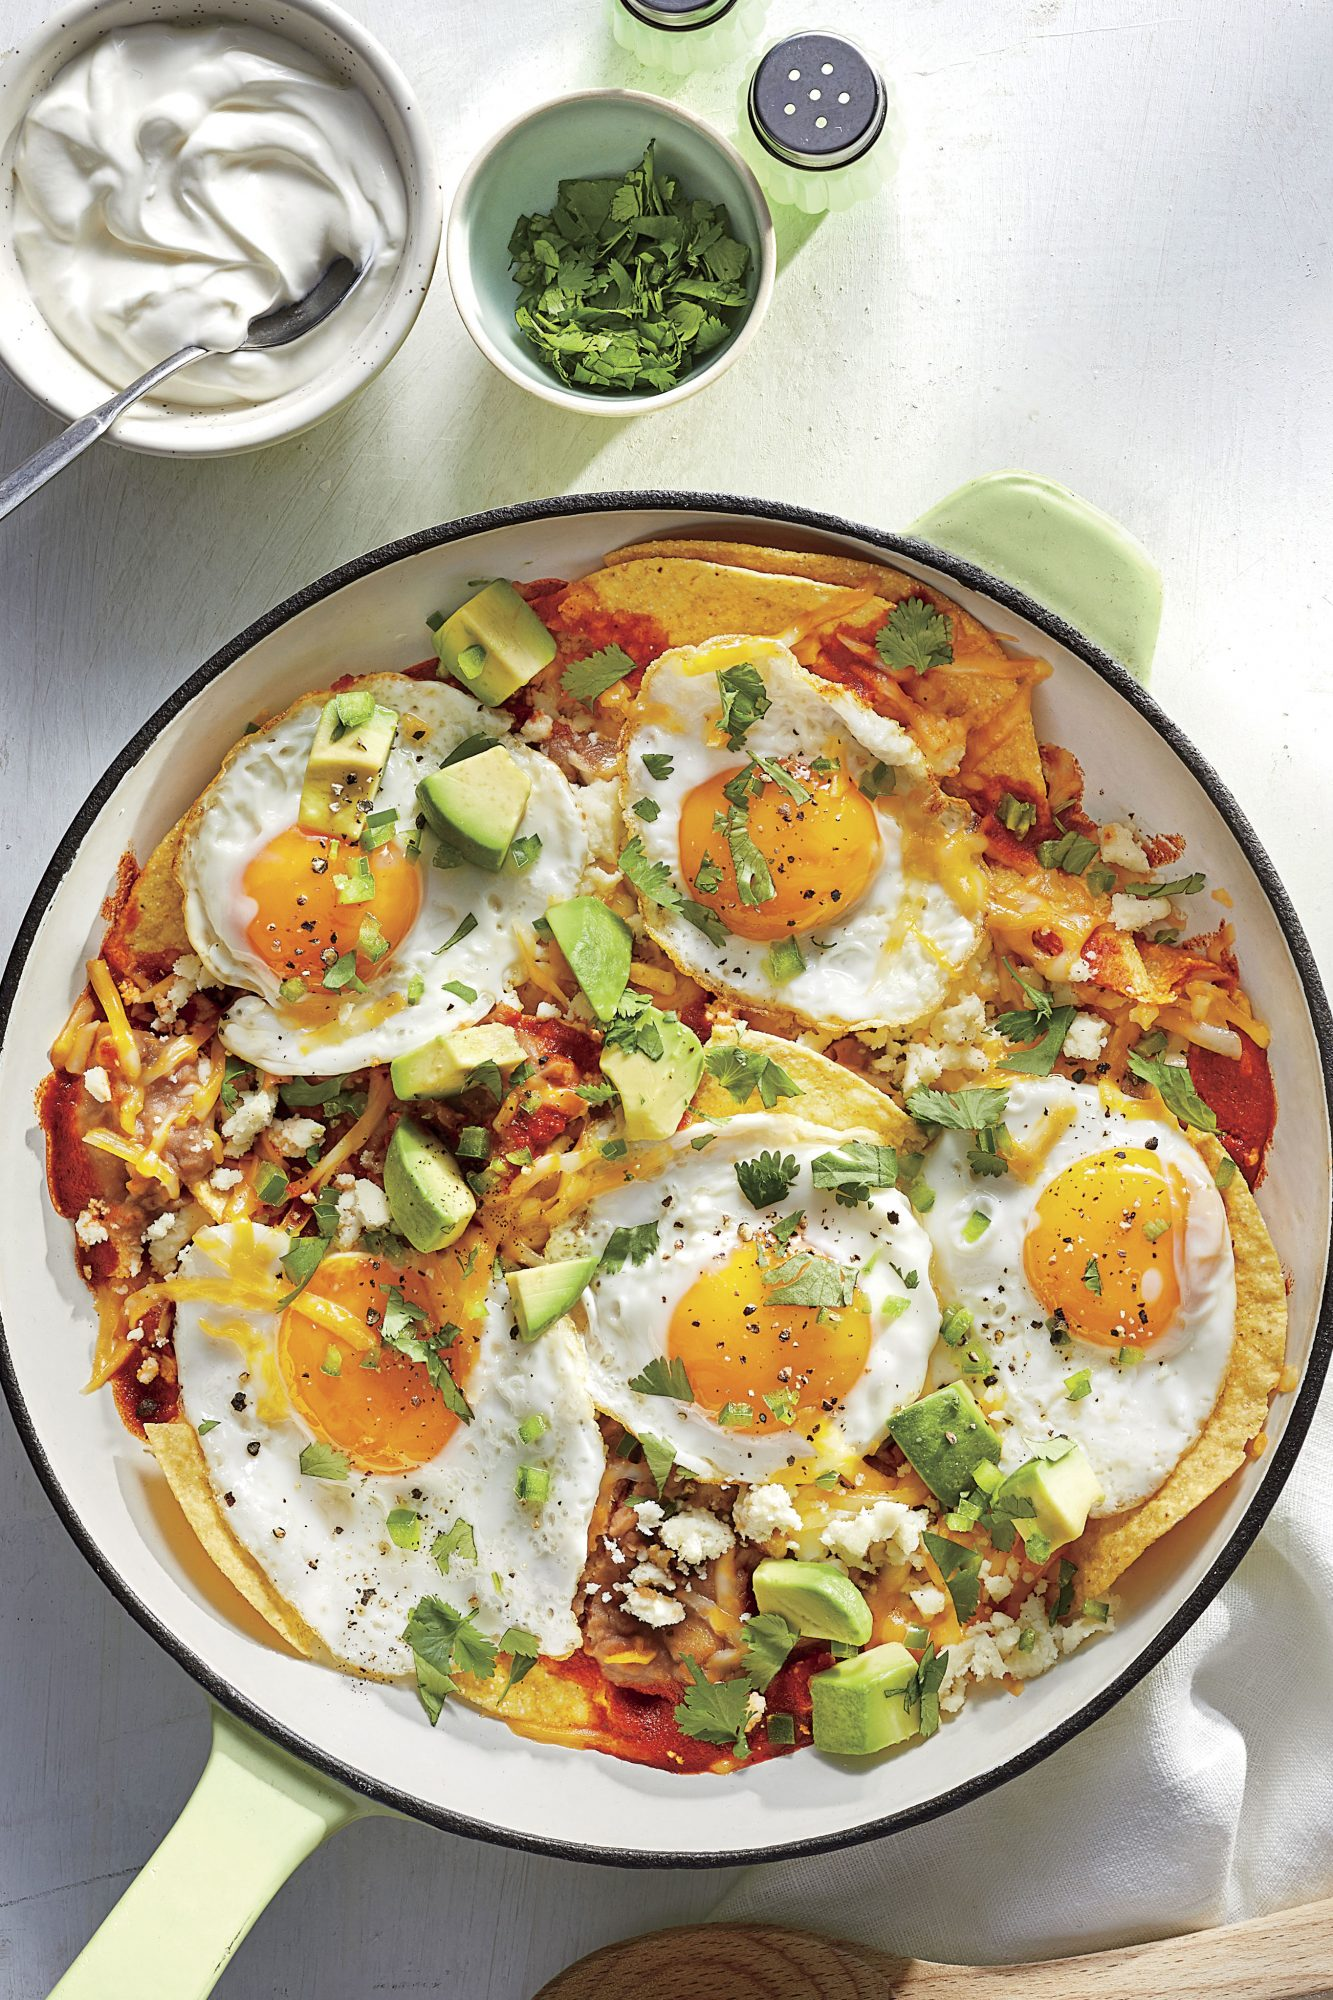 Easy Huevos Rancheros Bake